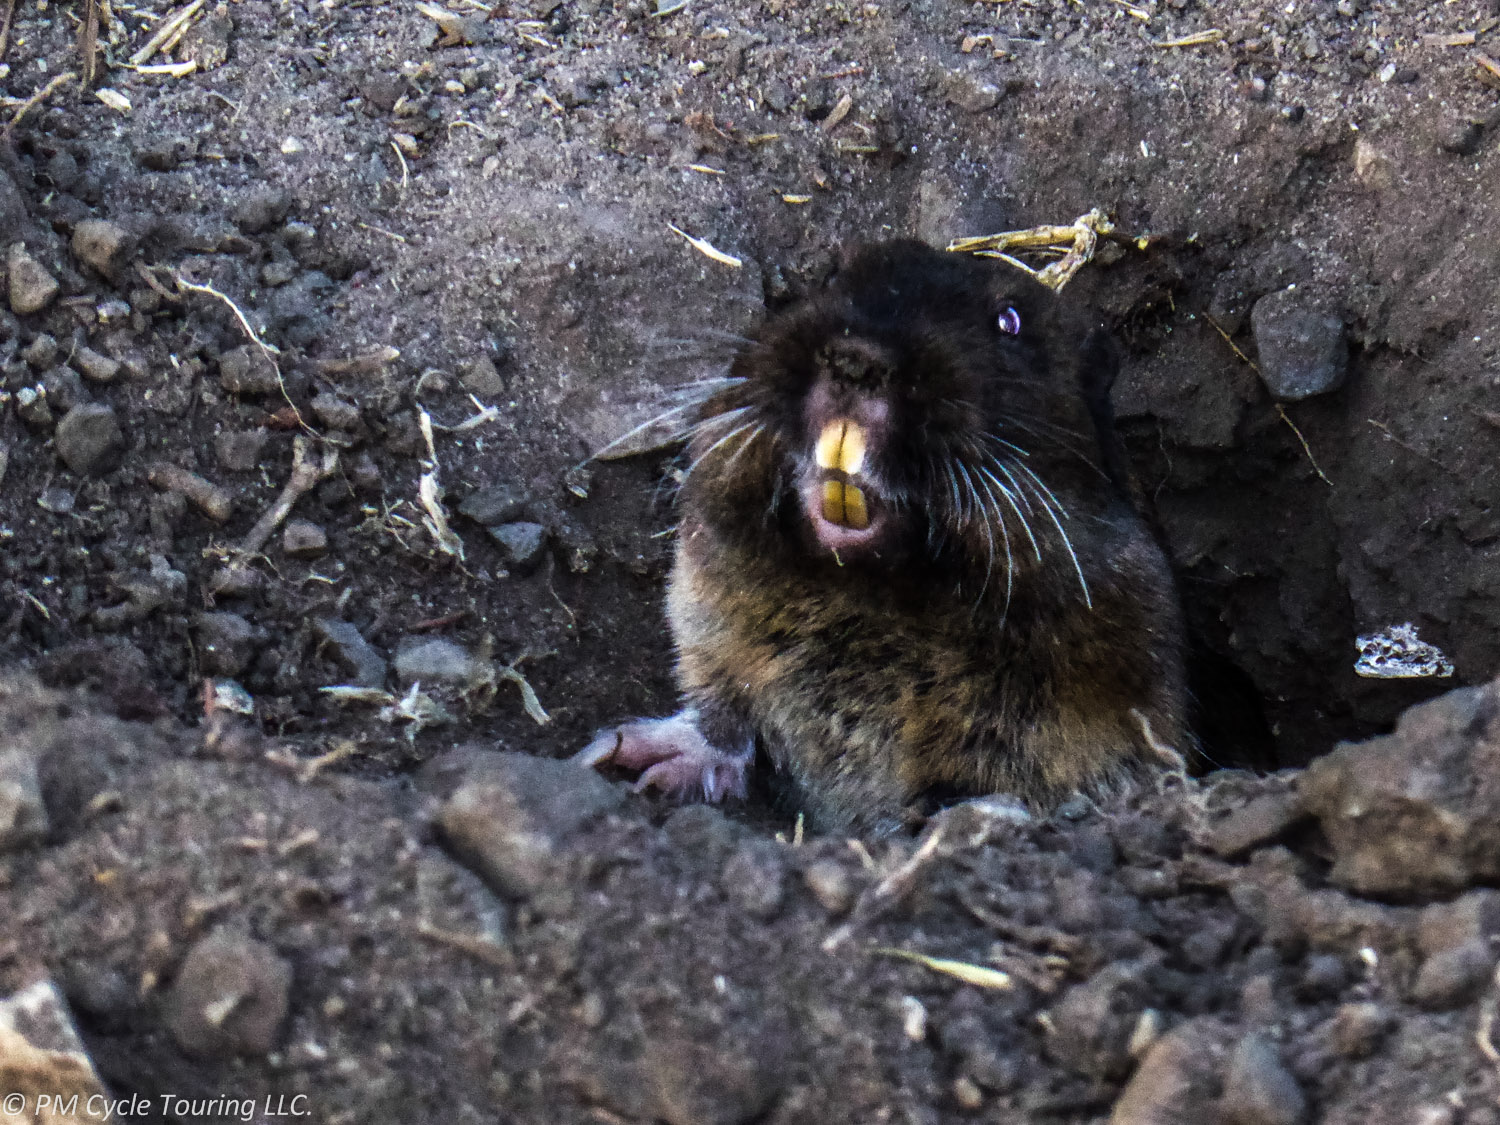 Small burrowing animal with giant teeth poking its head out of the ground.